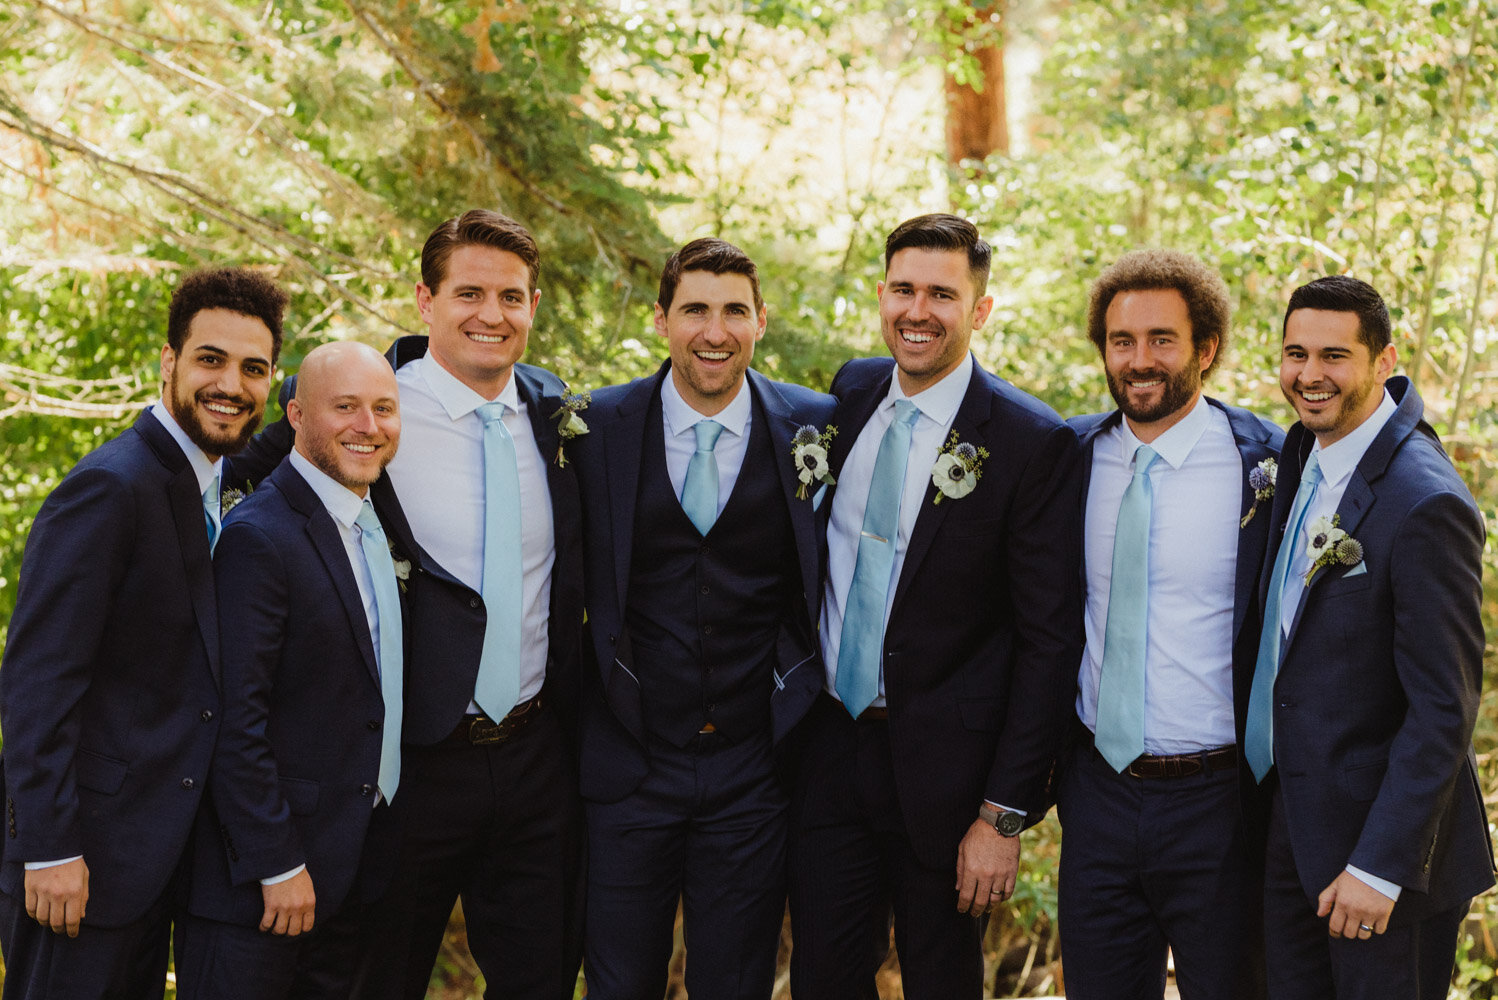 The Chateau Incline Village Wedding, groom and his friends photo